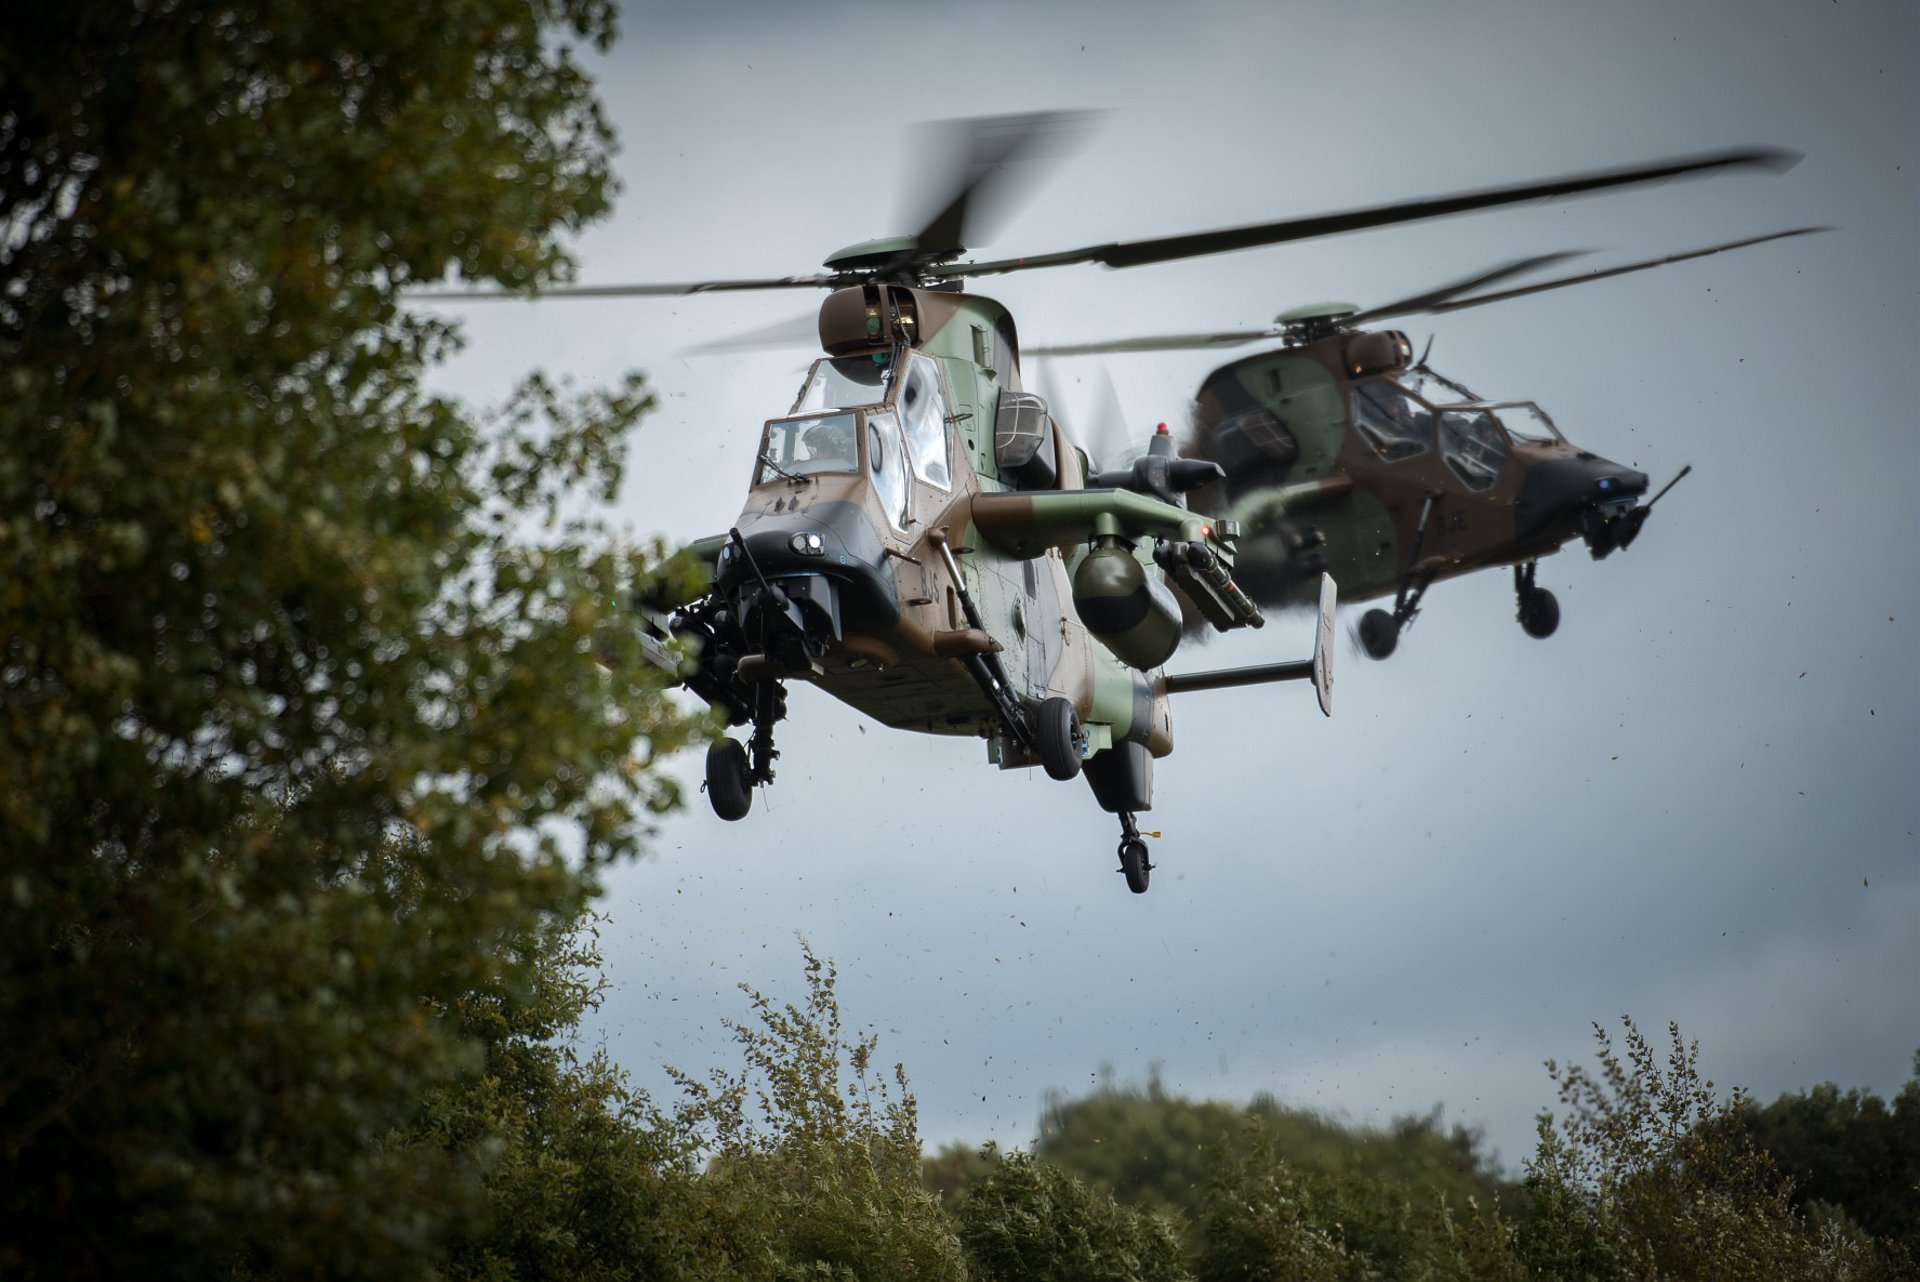 A view of two in-flight Tiger HAD military helicopters.